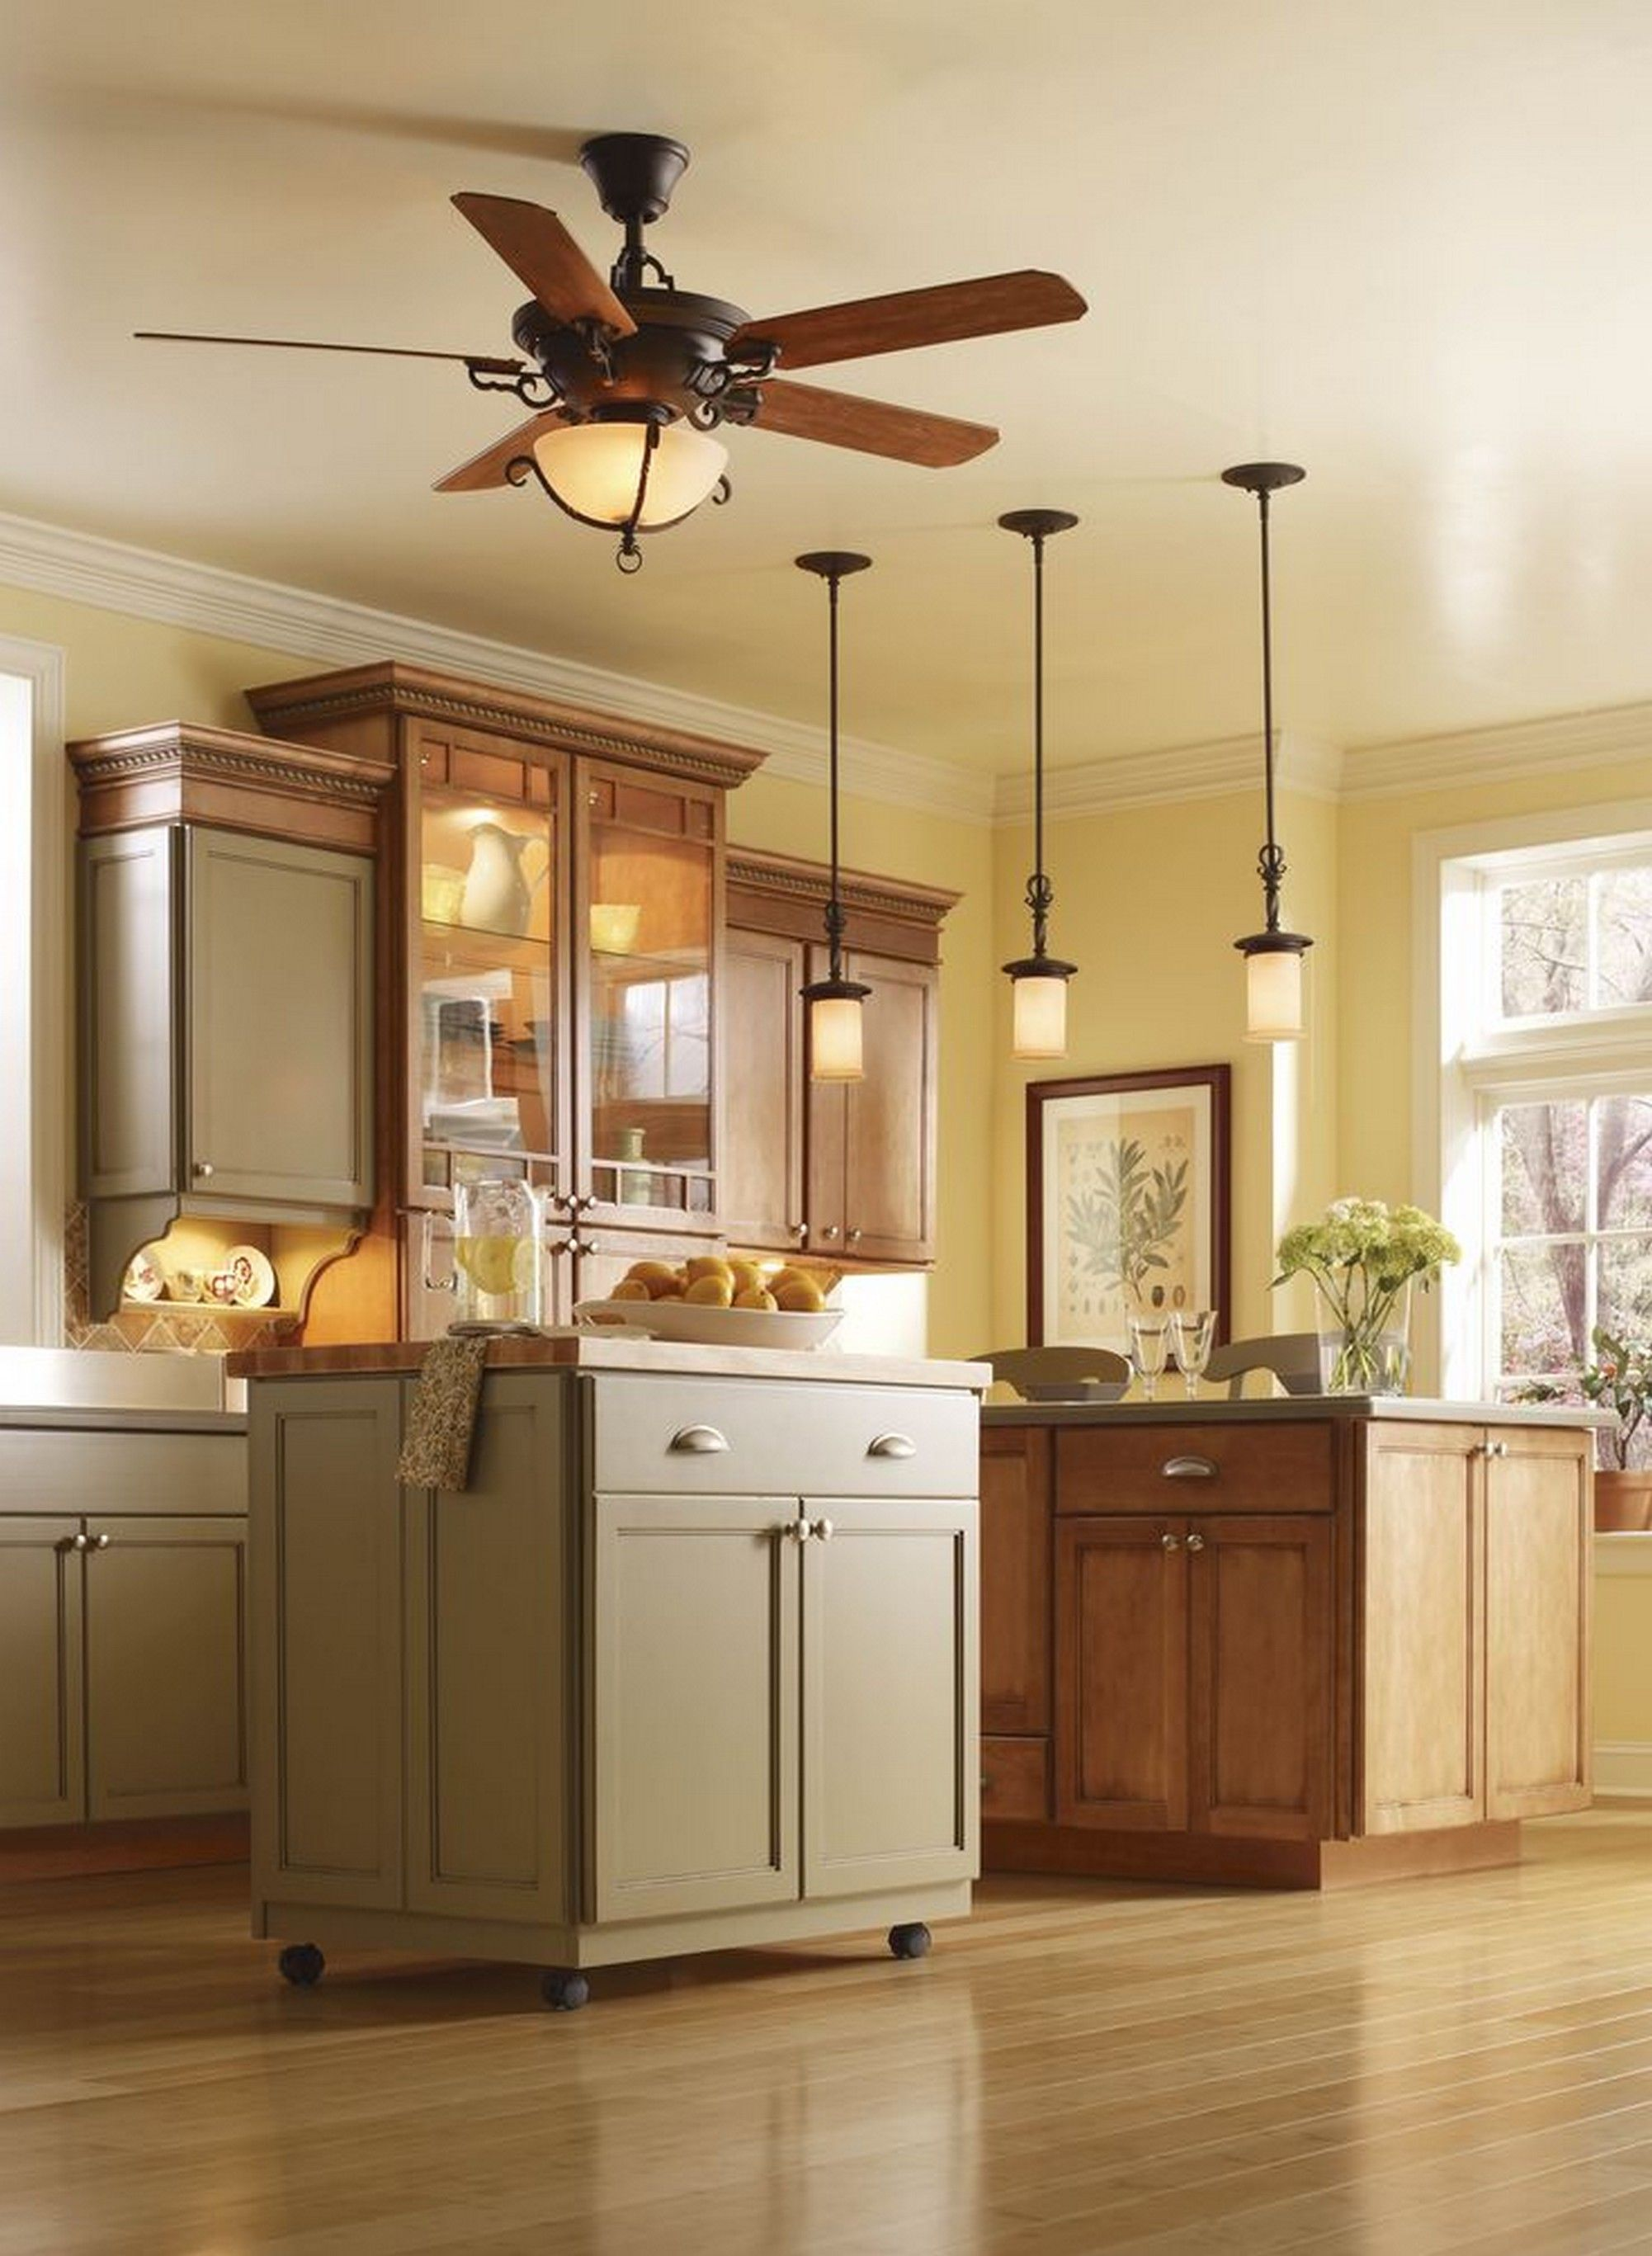 Small Island Under Awesome Kitchen Ceiling Lights With Wooden ... on kitchen phone ideas, kitchen fridge ideas, vintage kitchen lighting ideas, kitchen wood ceiling ideas, wall fan ideas, small kitchen island ideas, kitchen extra storage ideas, kitchen bifold door ideas, kitchen breakfast counter ideas, kitchen dining set ideas, kitchen vaulted ceiling ideas, kitchen accent wall color ideas, kitchen bathroom ideas, kitchen heating ideas, kitchen tray ceiling ideas, kitchen dry bar ideas, kitchen exhaust fan ideas, kitchen ceiling painting ideas, kitchen half bath ideas, kitchen cathedral ceiling ideas,